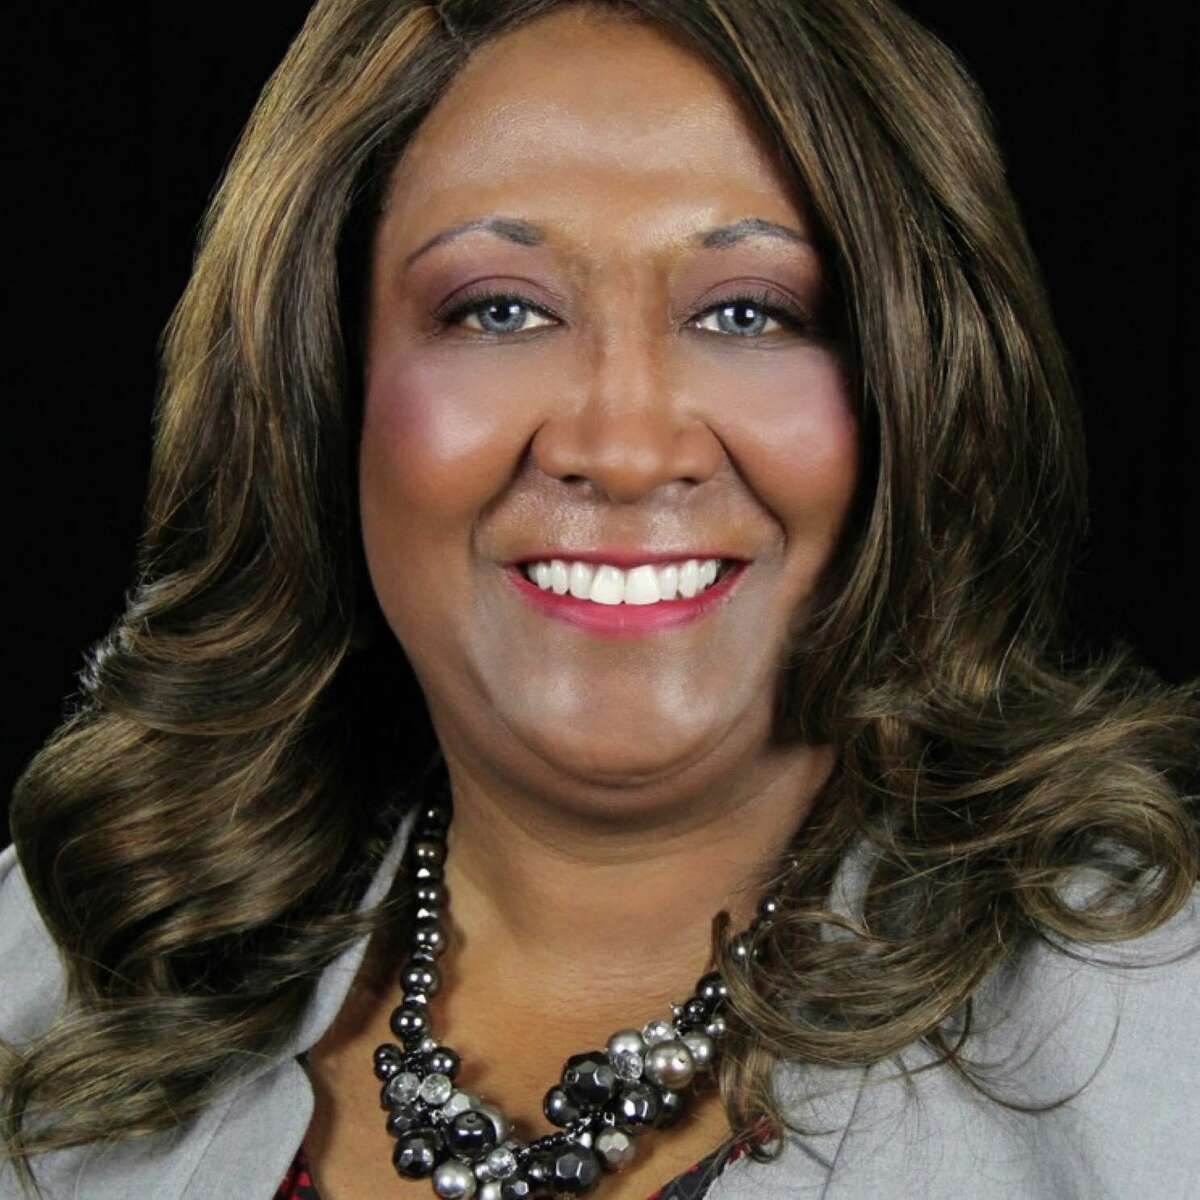 Lynette Perez is resigning from her District 7 at-large seat on the Judson ISD board of trustees in order to pursue a new job and develop an existing family business in Little Rock, Ark.